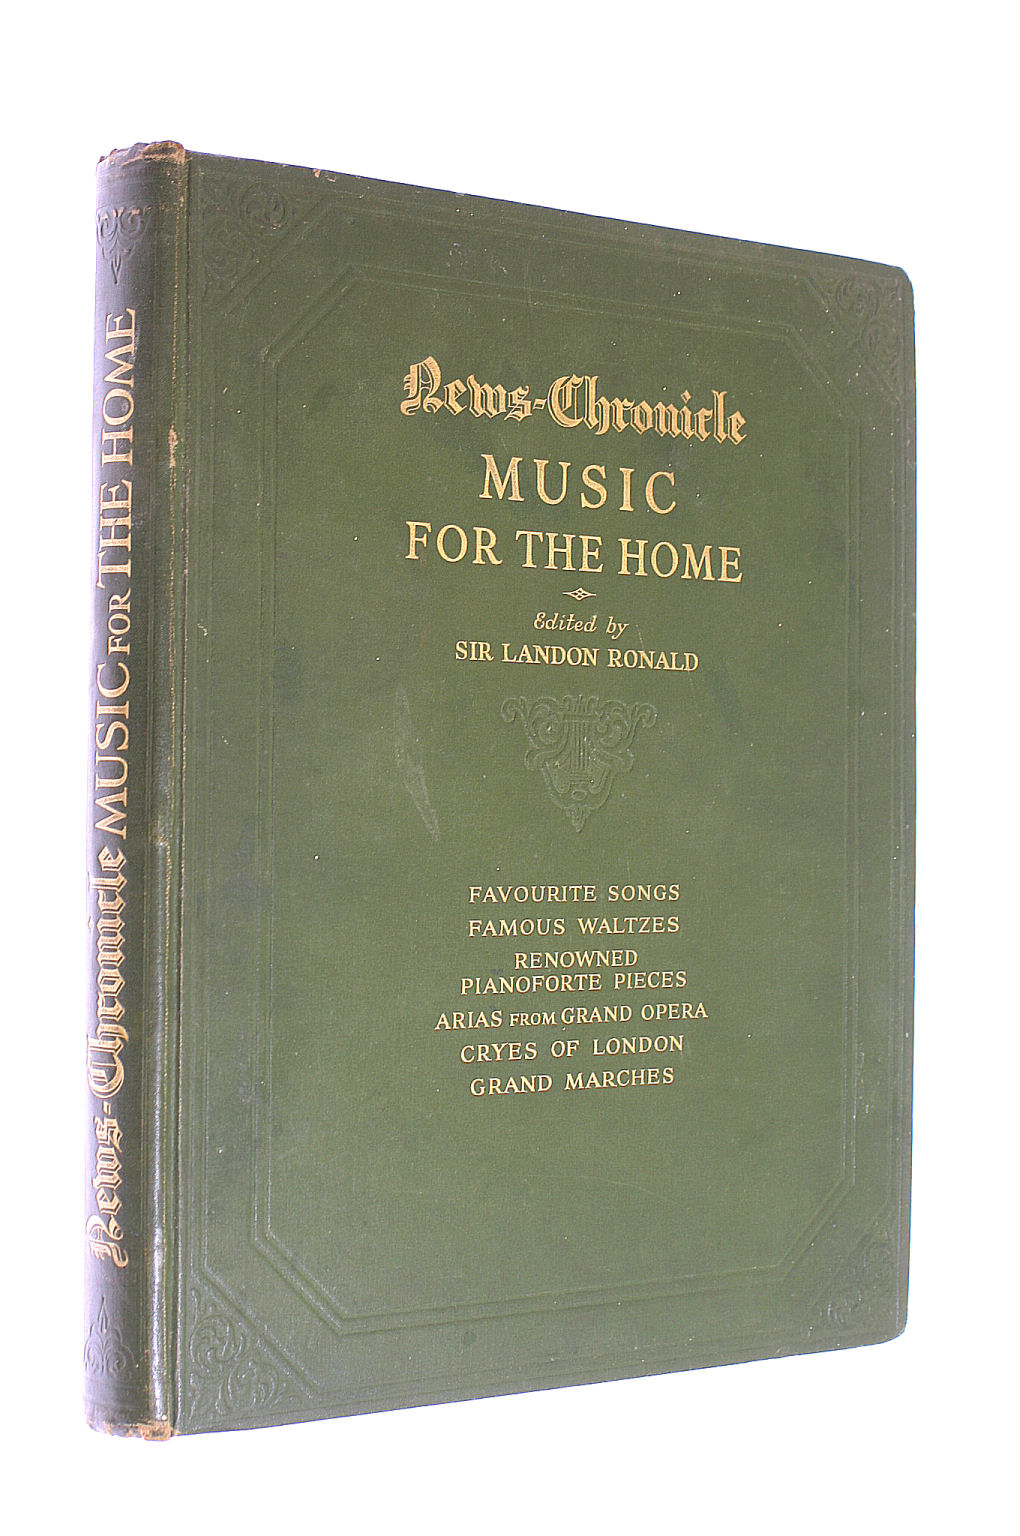 Image for Music For the Home. Favourite Songs. Famous Waltzes. Renowned Pianoforte Pieces. Arias From Grand Opera. Cryes of London. Grand Marches